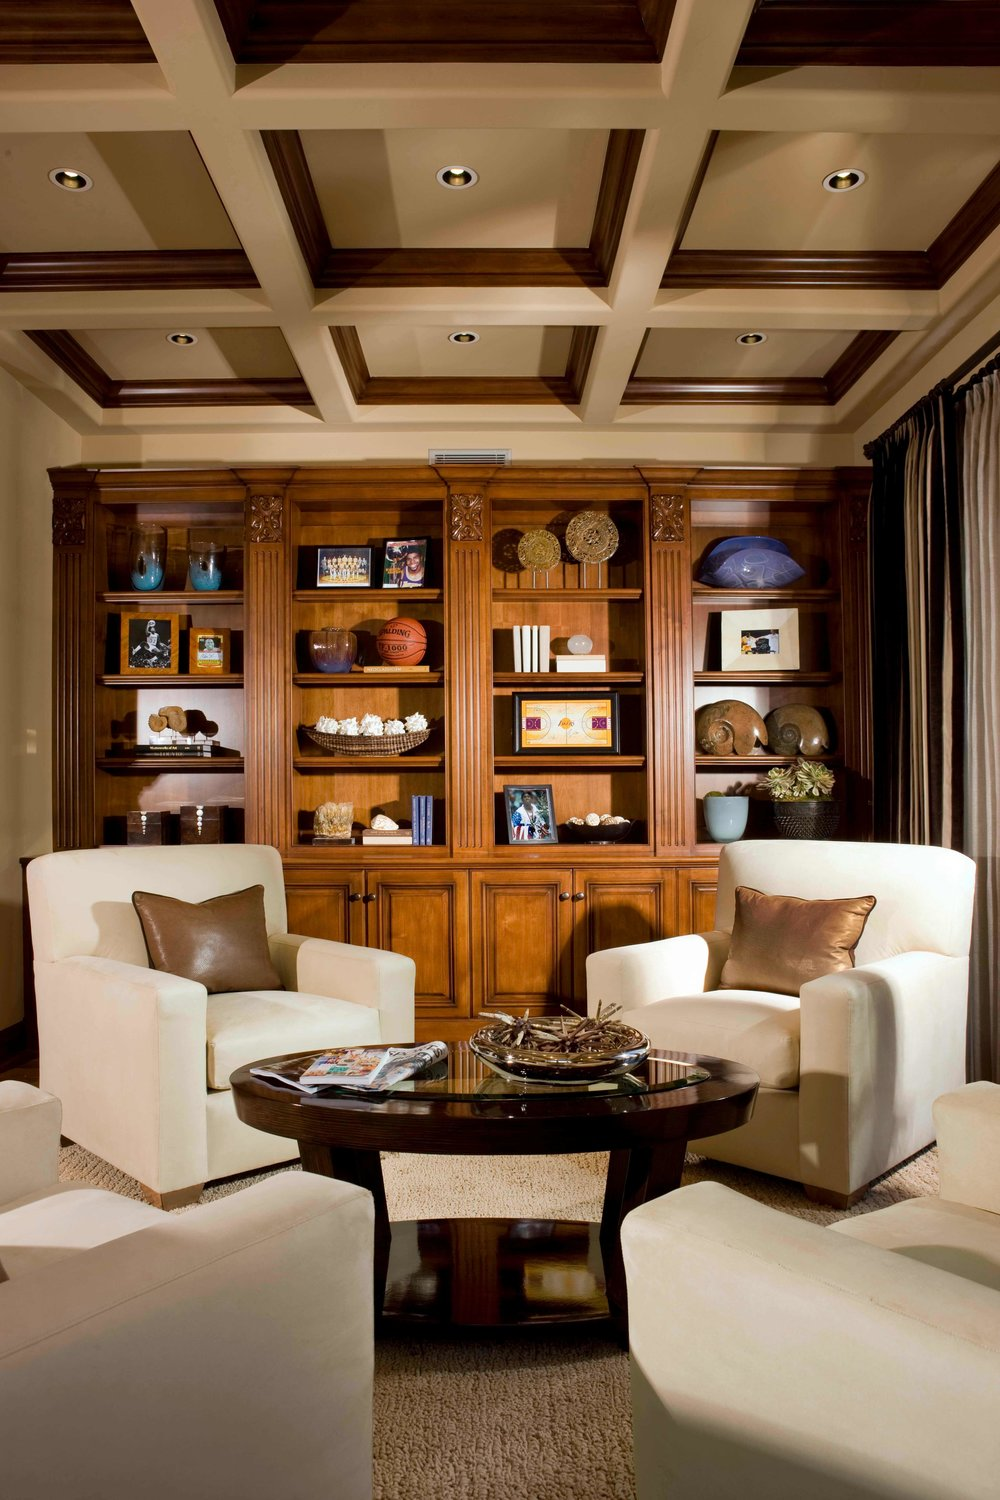 elizabeth-tapper-interiors-ritz-cove-laguna-library-man-cave-club-chairs-office.jpg